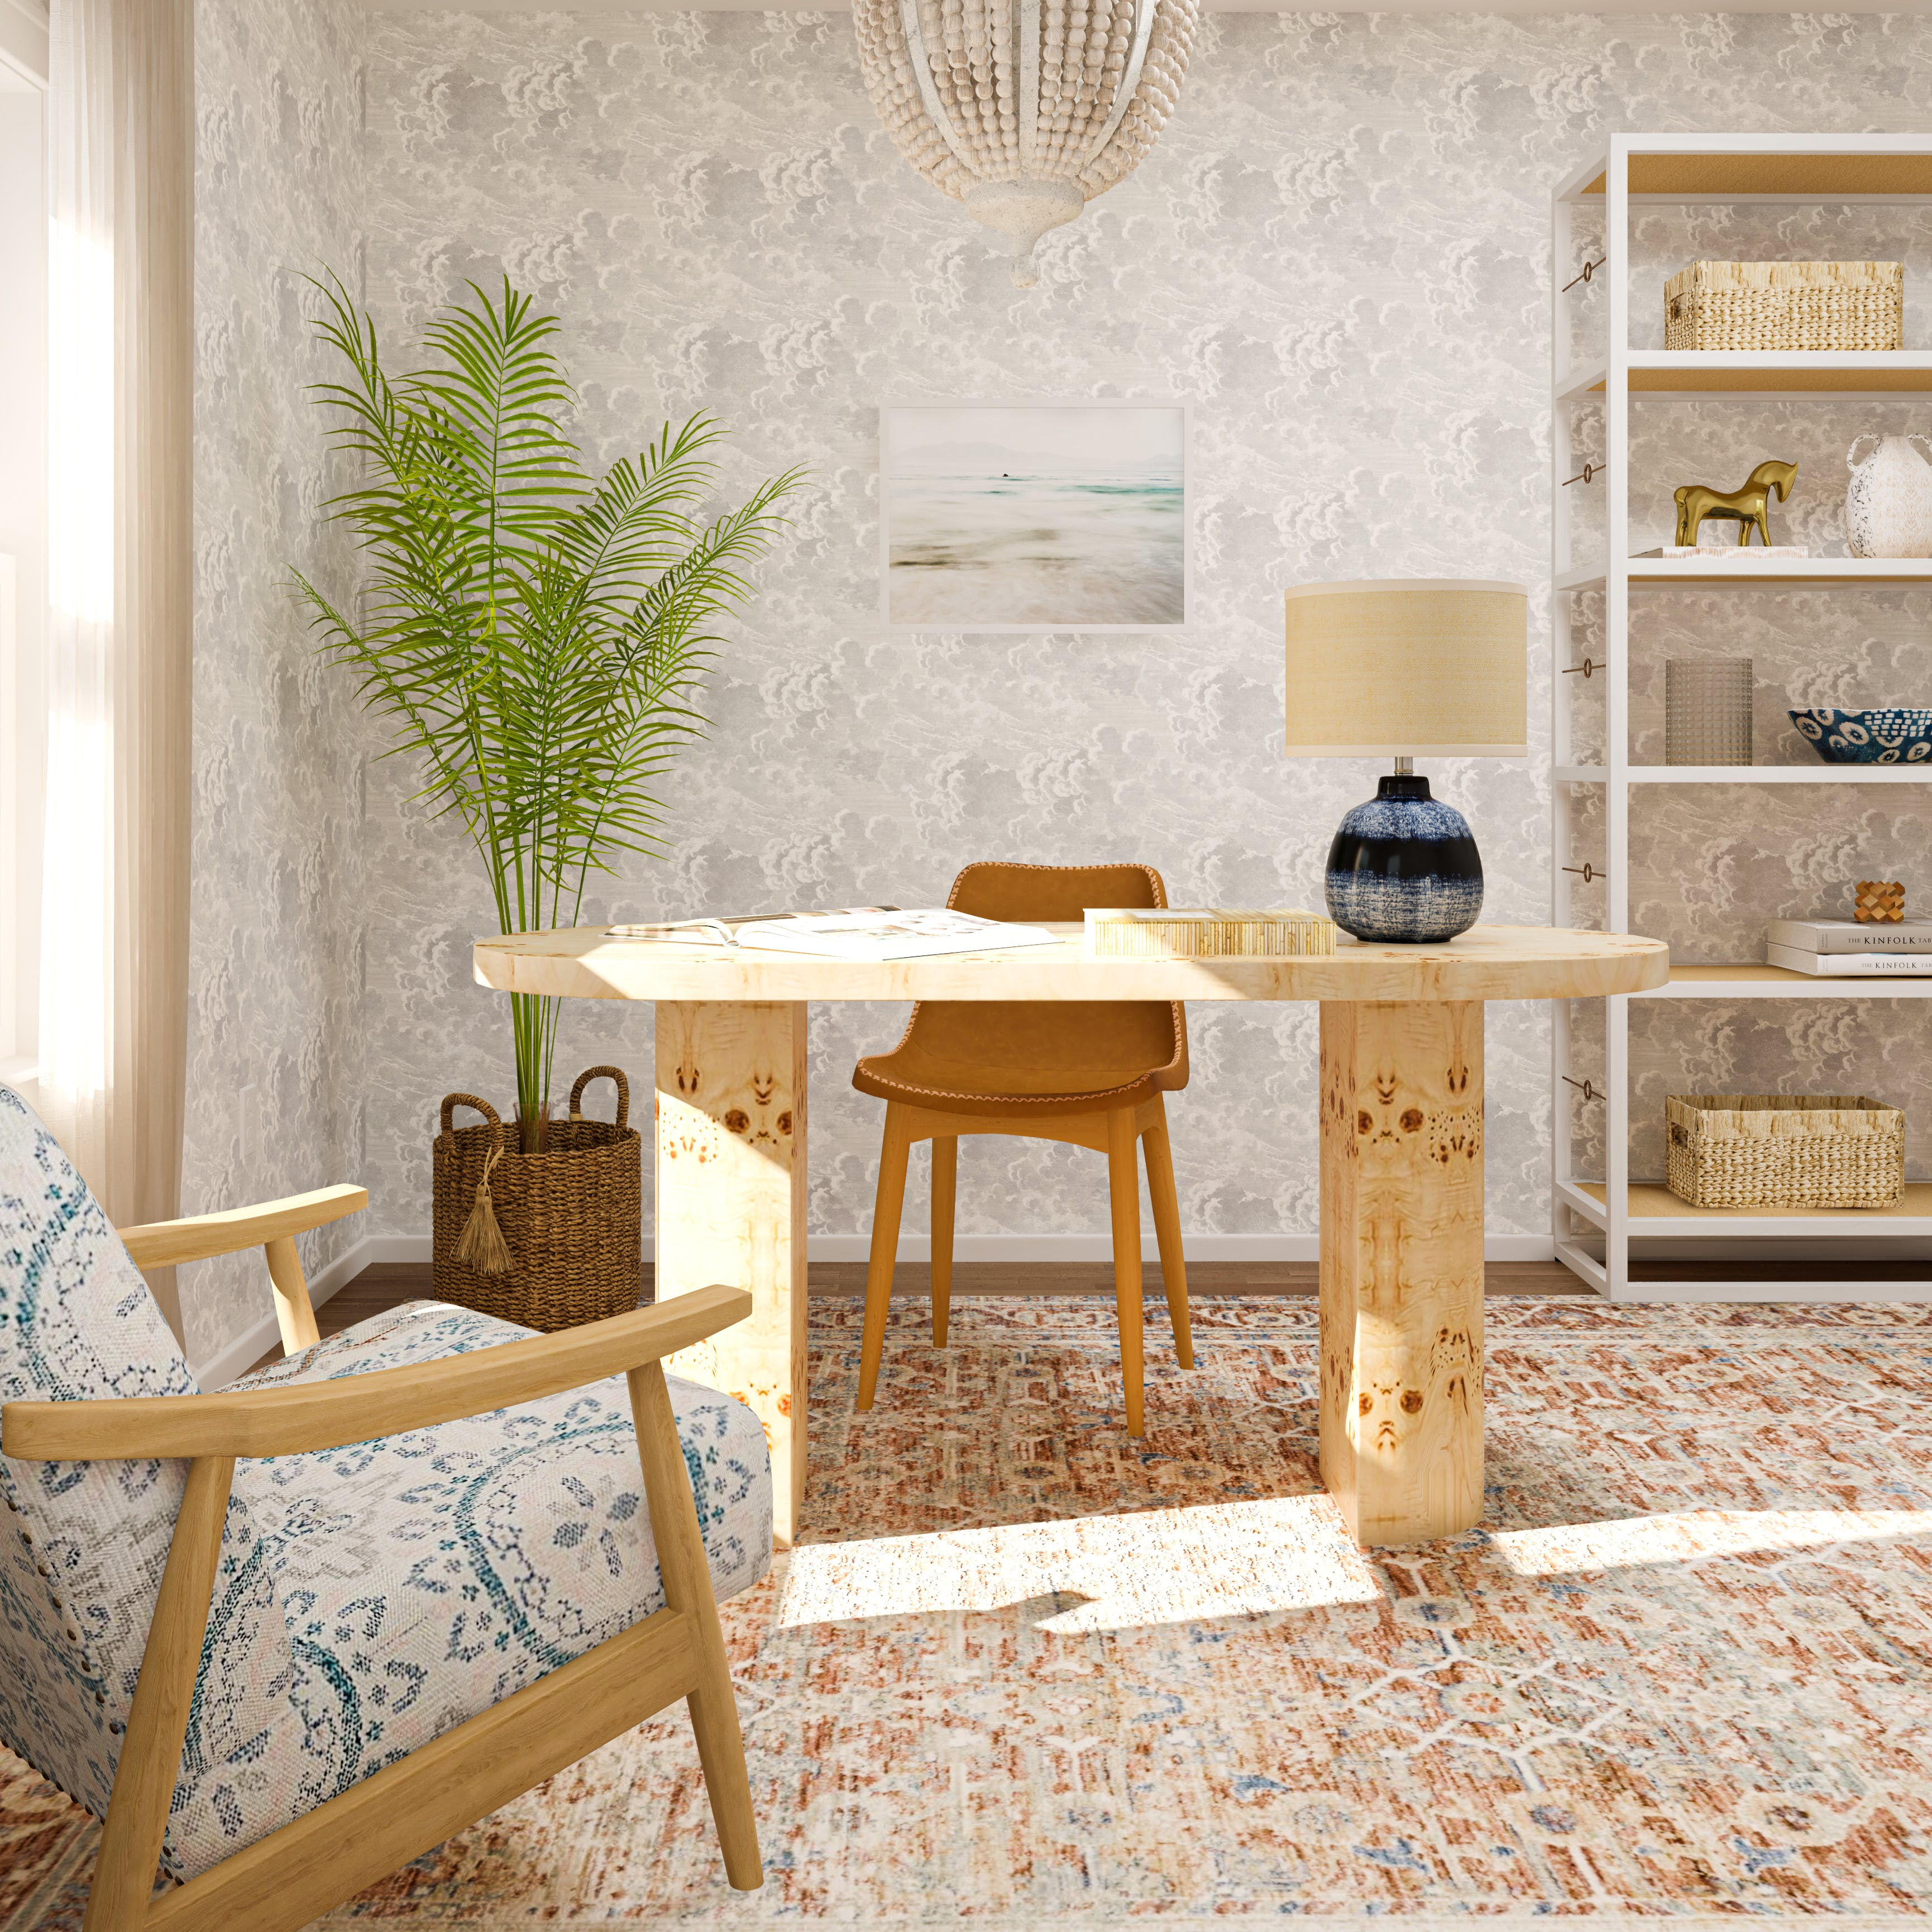 Why Our Designers Love The Revere Rug